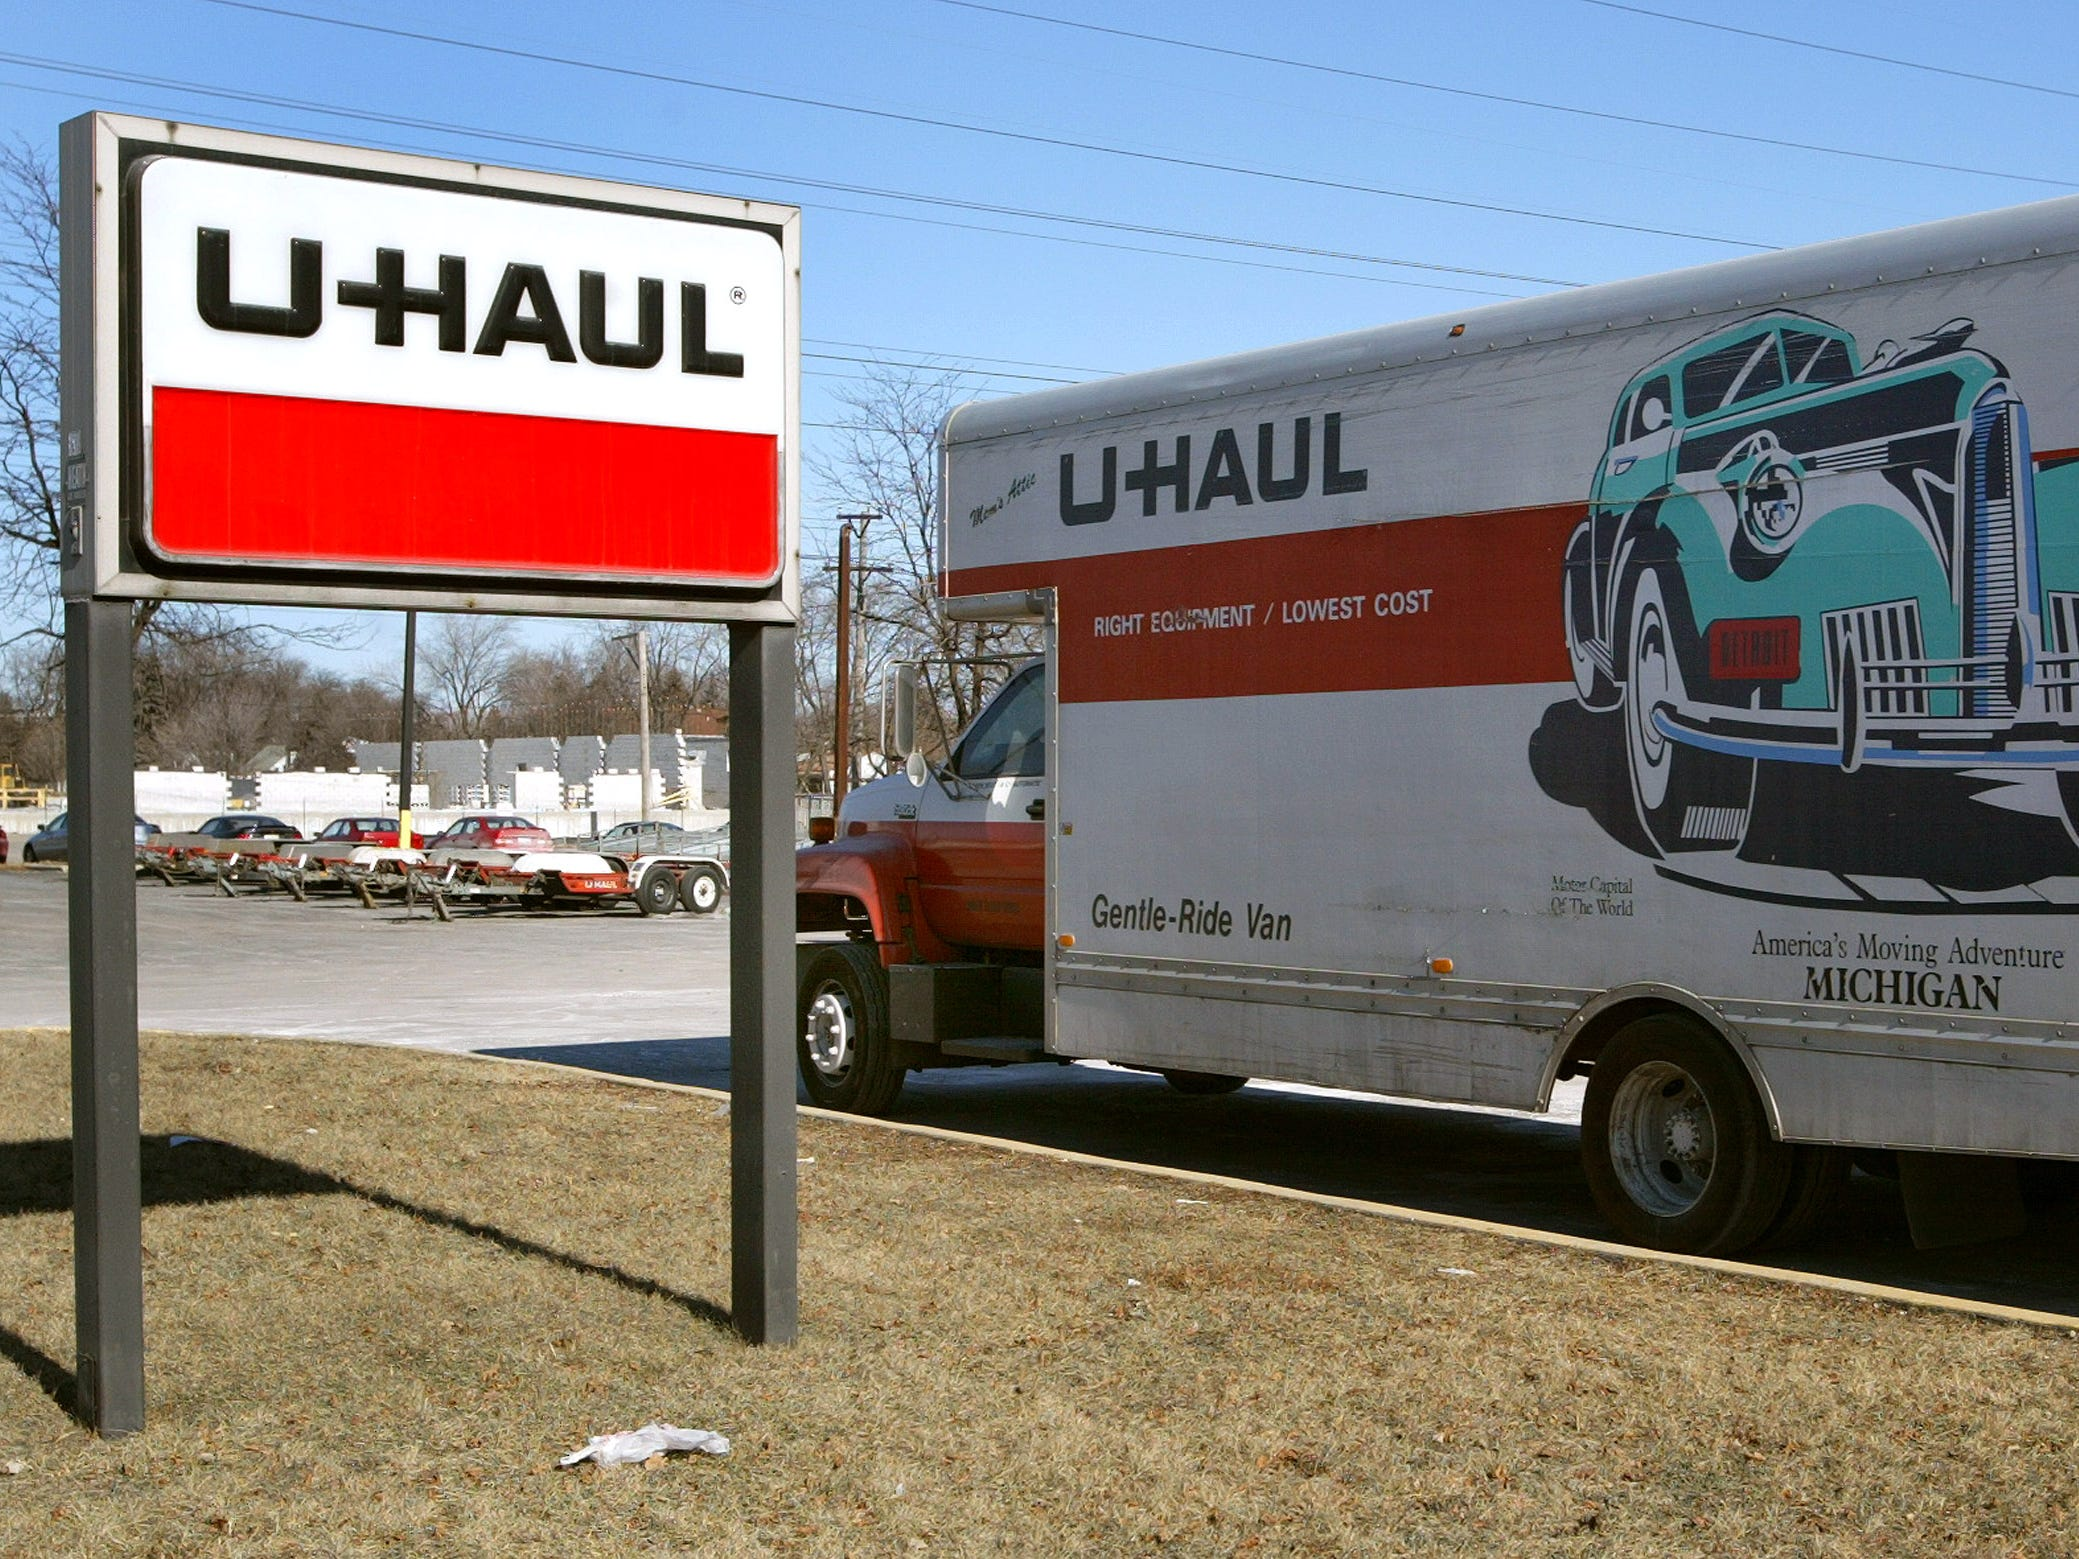 U-Haul, hiring 160. The transportation and propane-services company has openings ranging from customer representatives to area field manager. More info: jobs.uhaul.com.